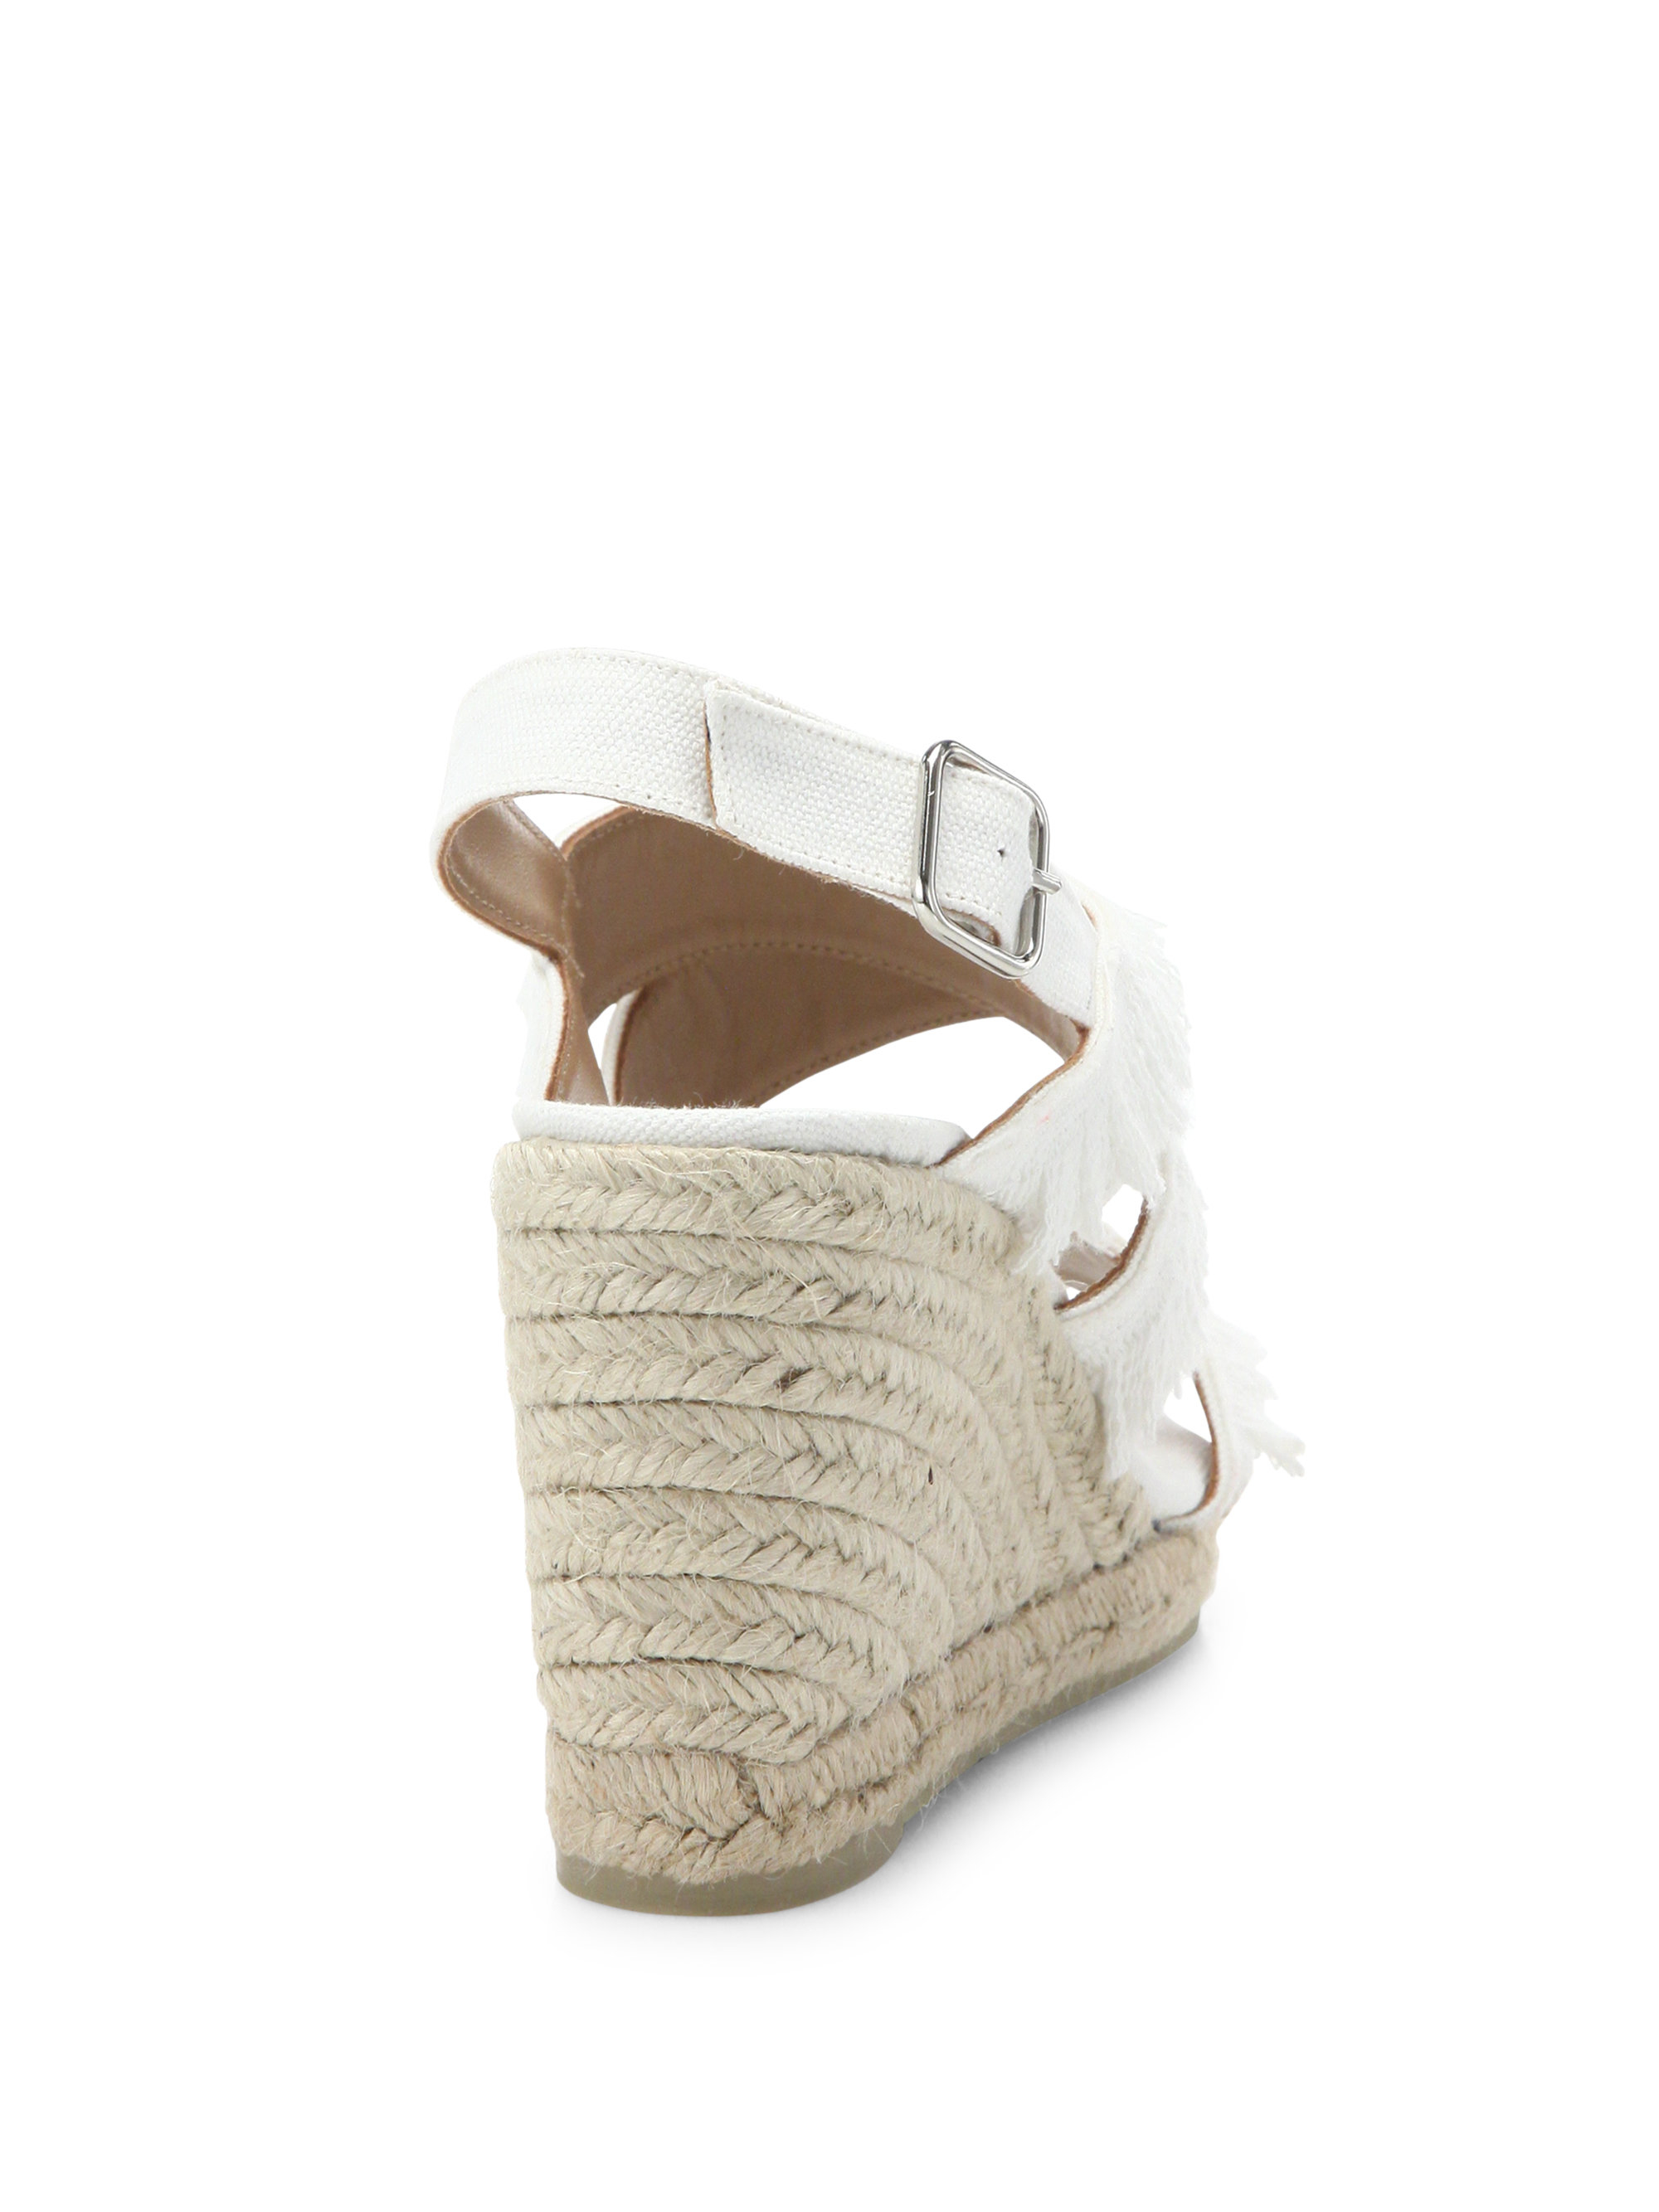 a82a040fd86 Lyst - Castaner Begga Feathered Canvas Espadrille Wedge Sandals in White